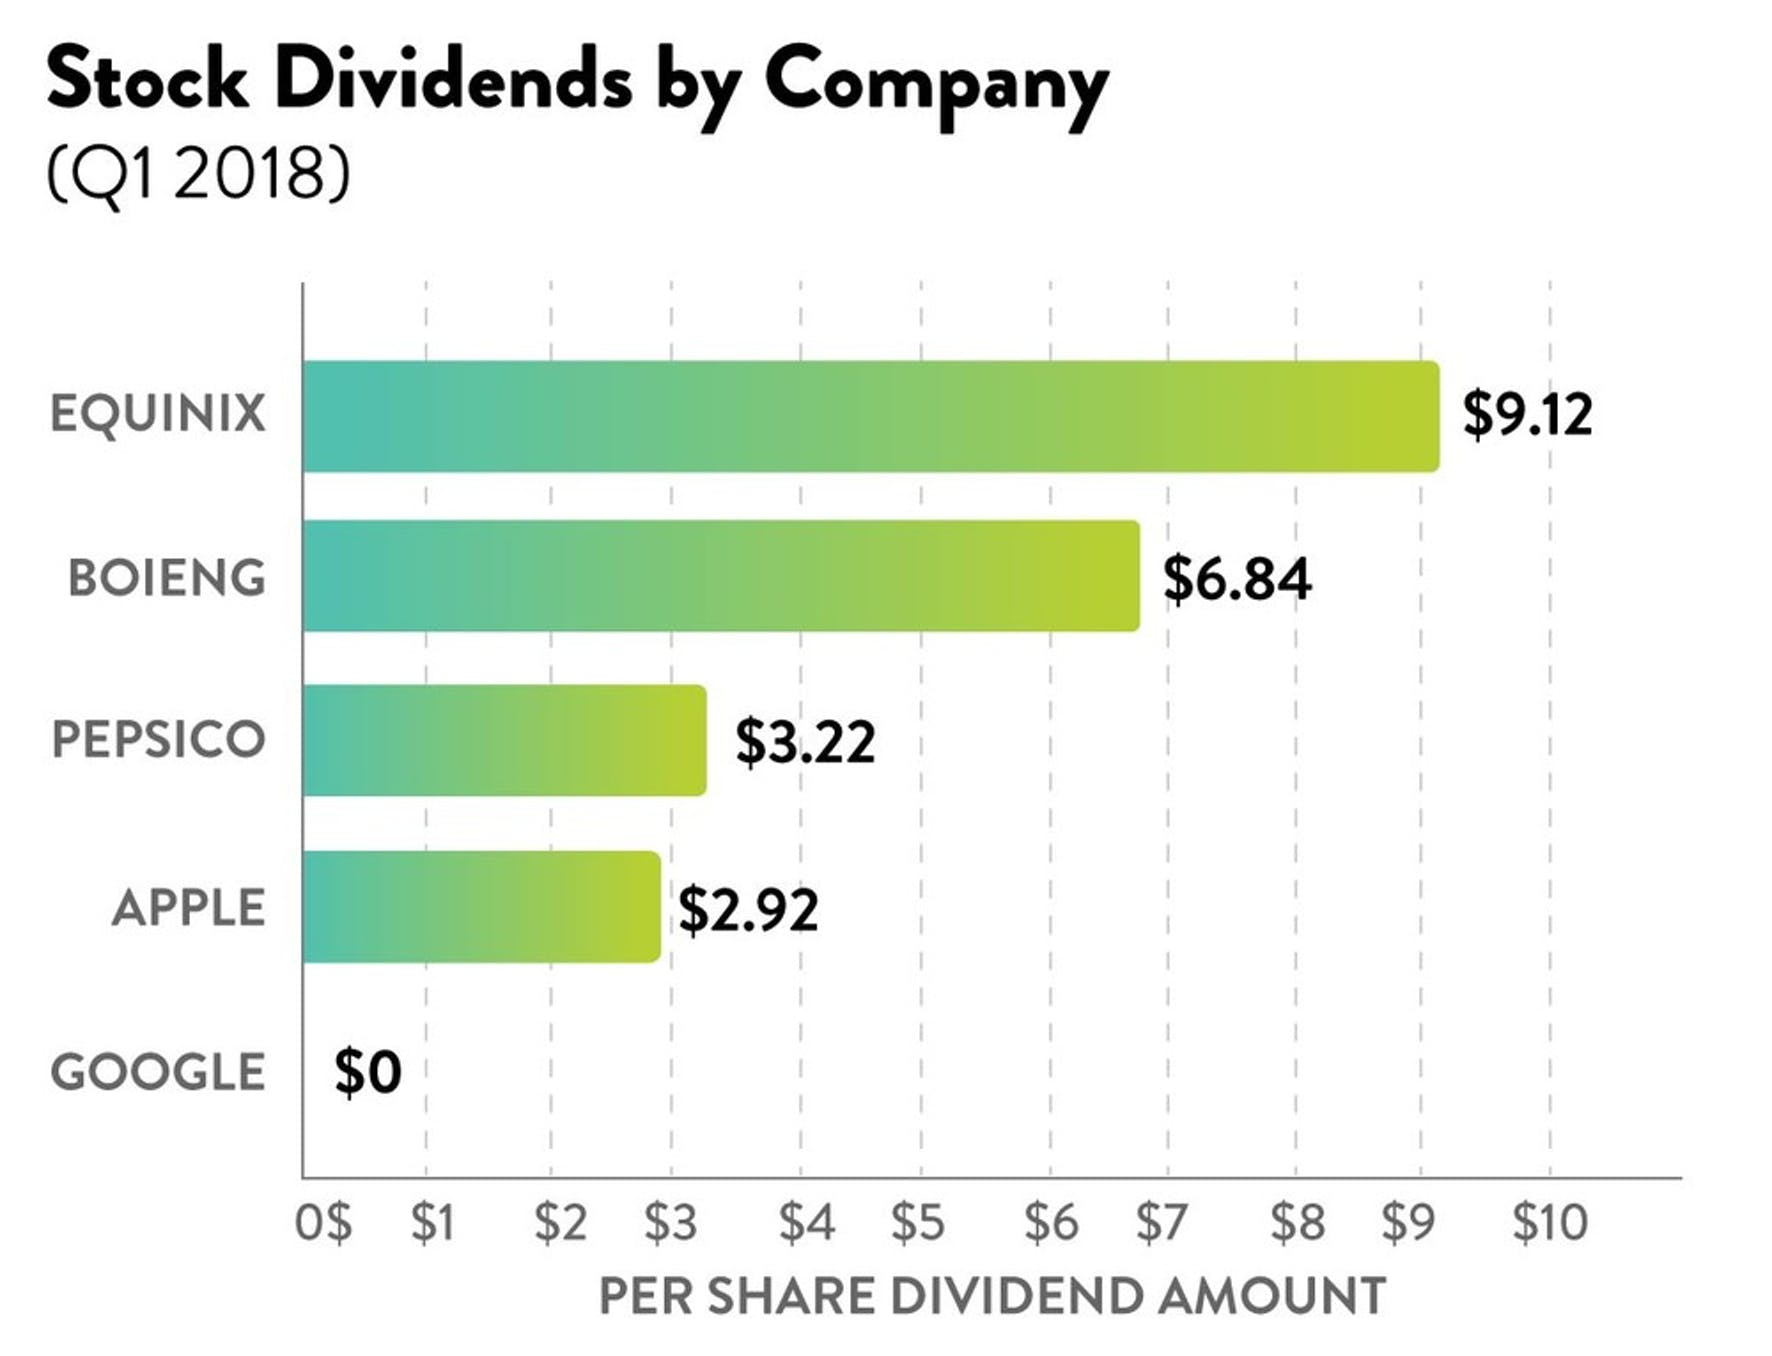 Stock Chart: dividends by company. Comparison of select stock dividends for Q1 2018.